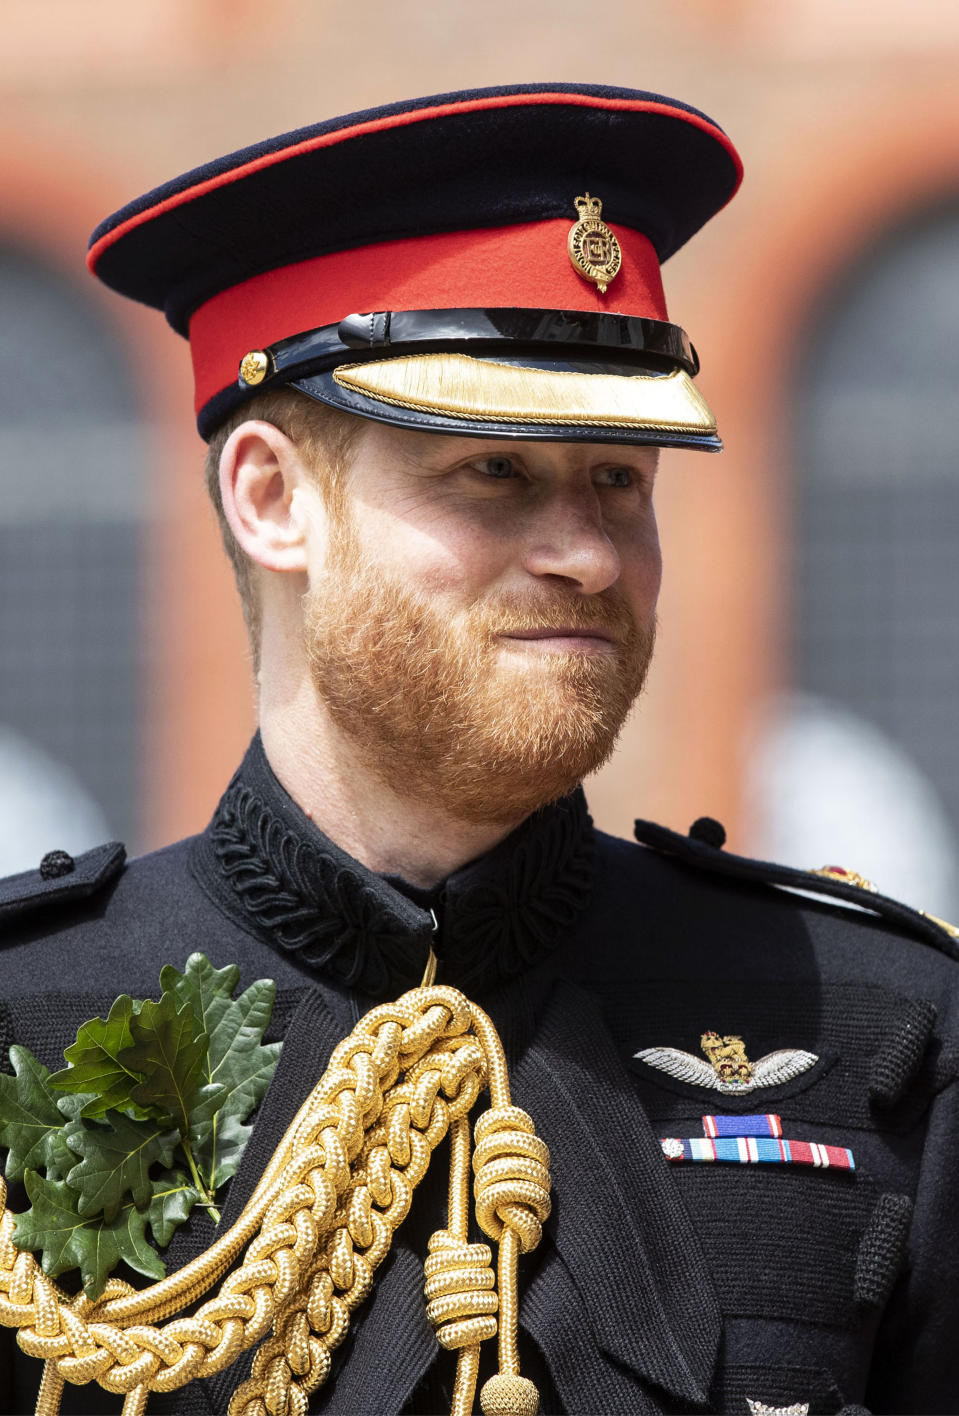 Prince Harry The Duke of Sussex celebrates his 36th birthday.